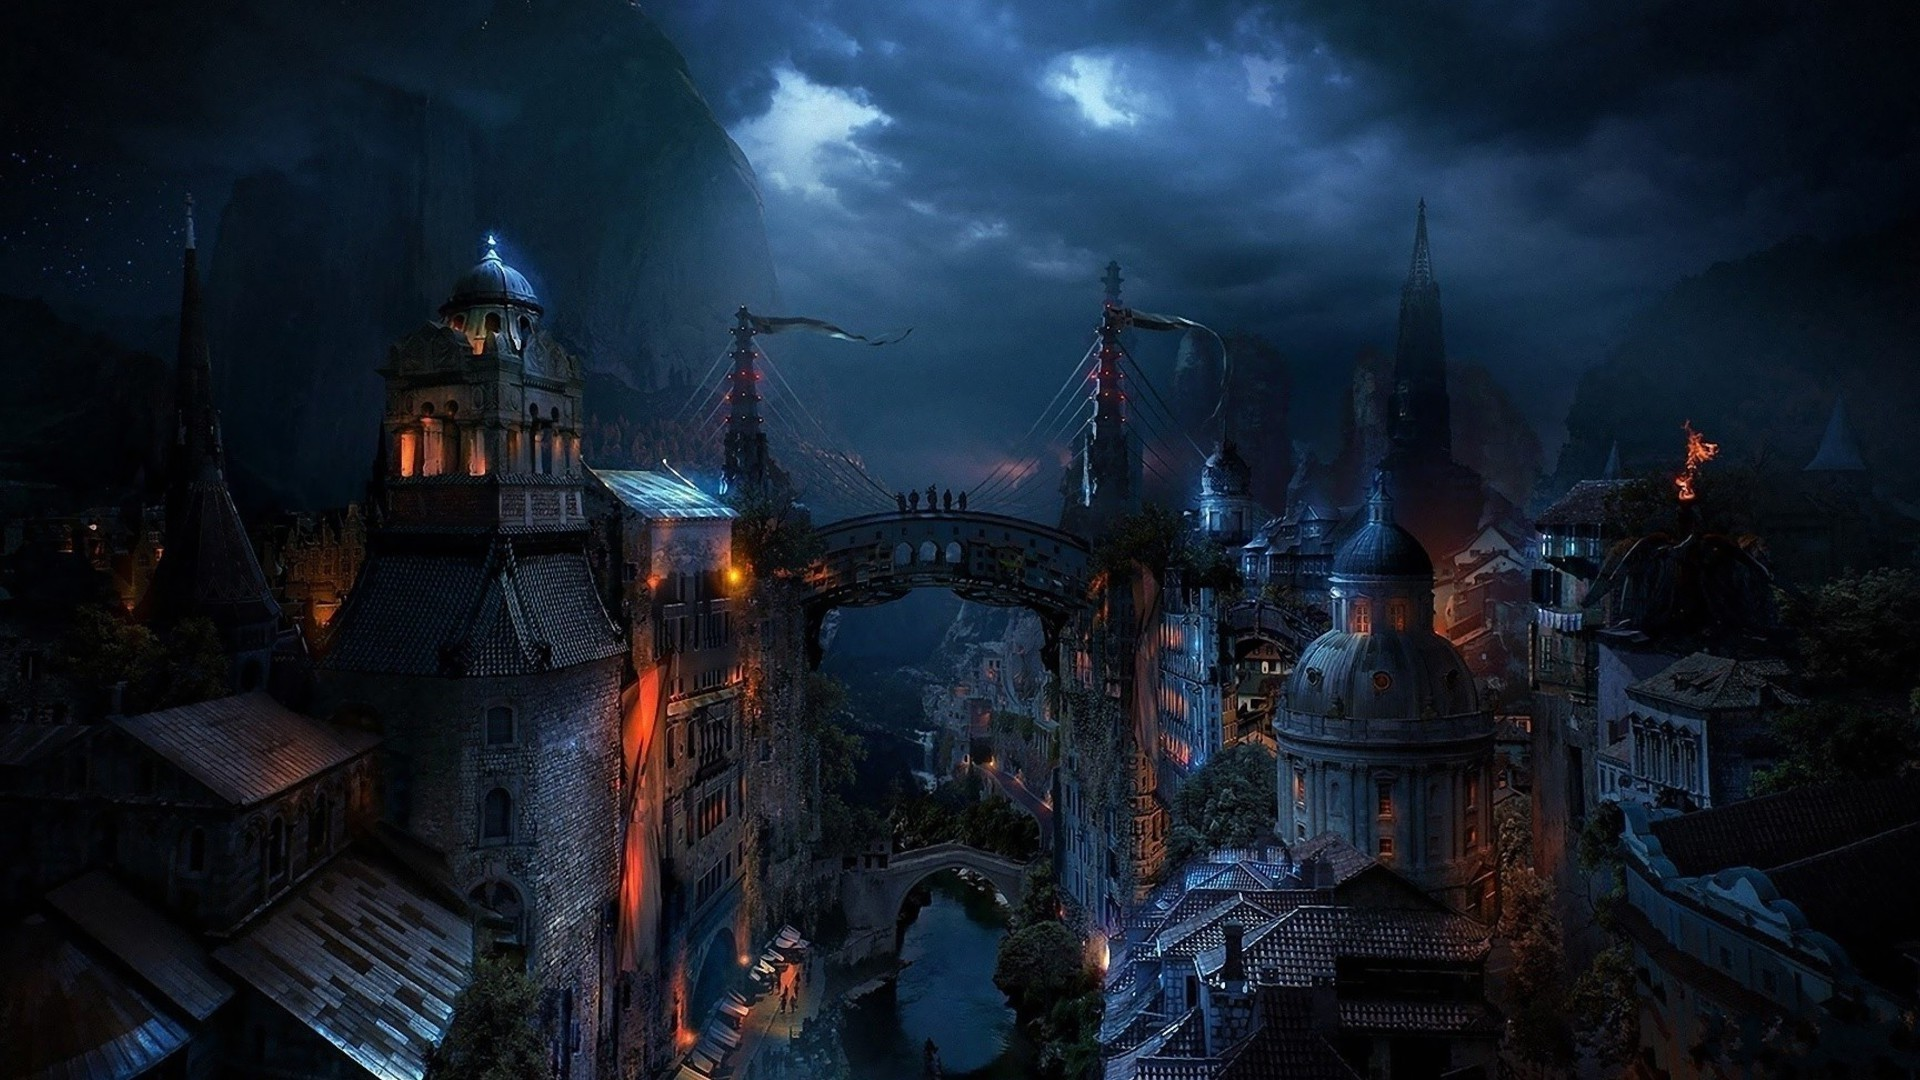 Dark Medieval City wallpapers HD   461916 1920x1080